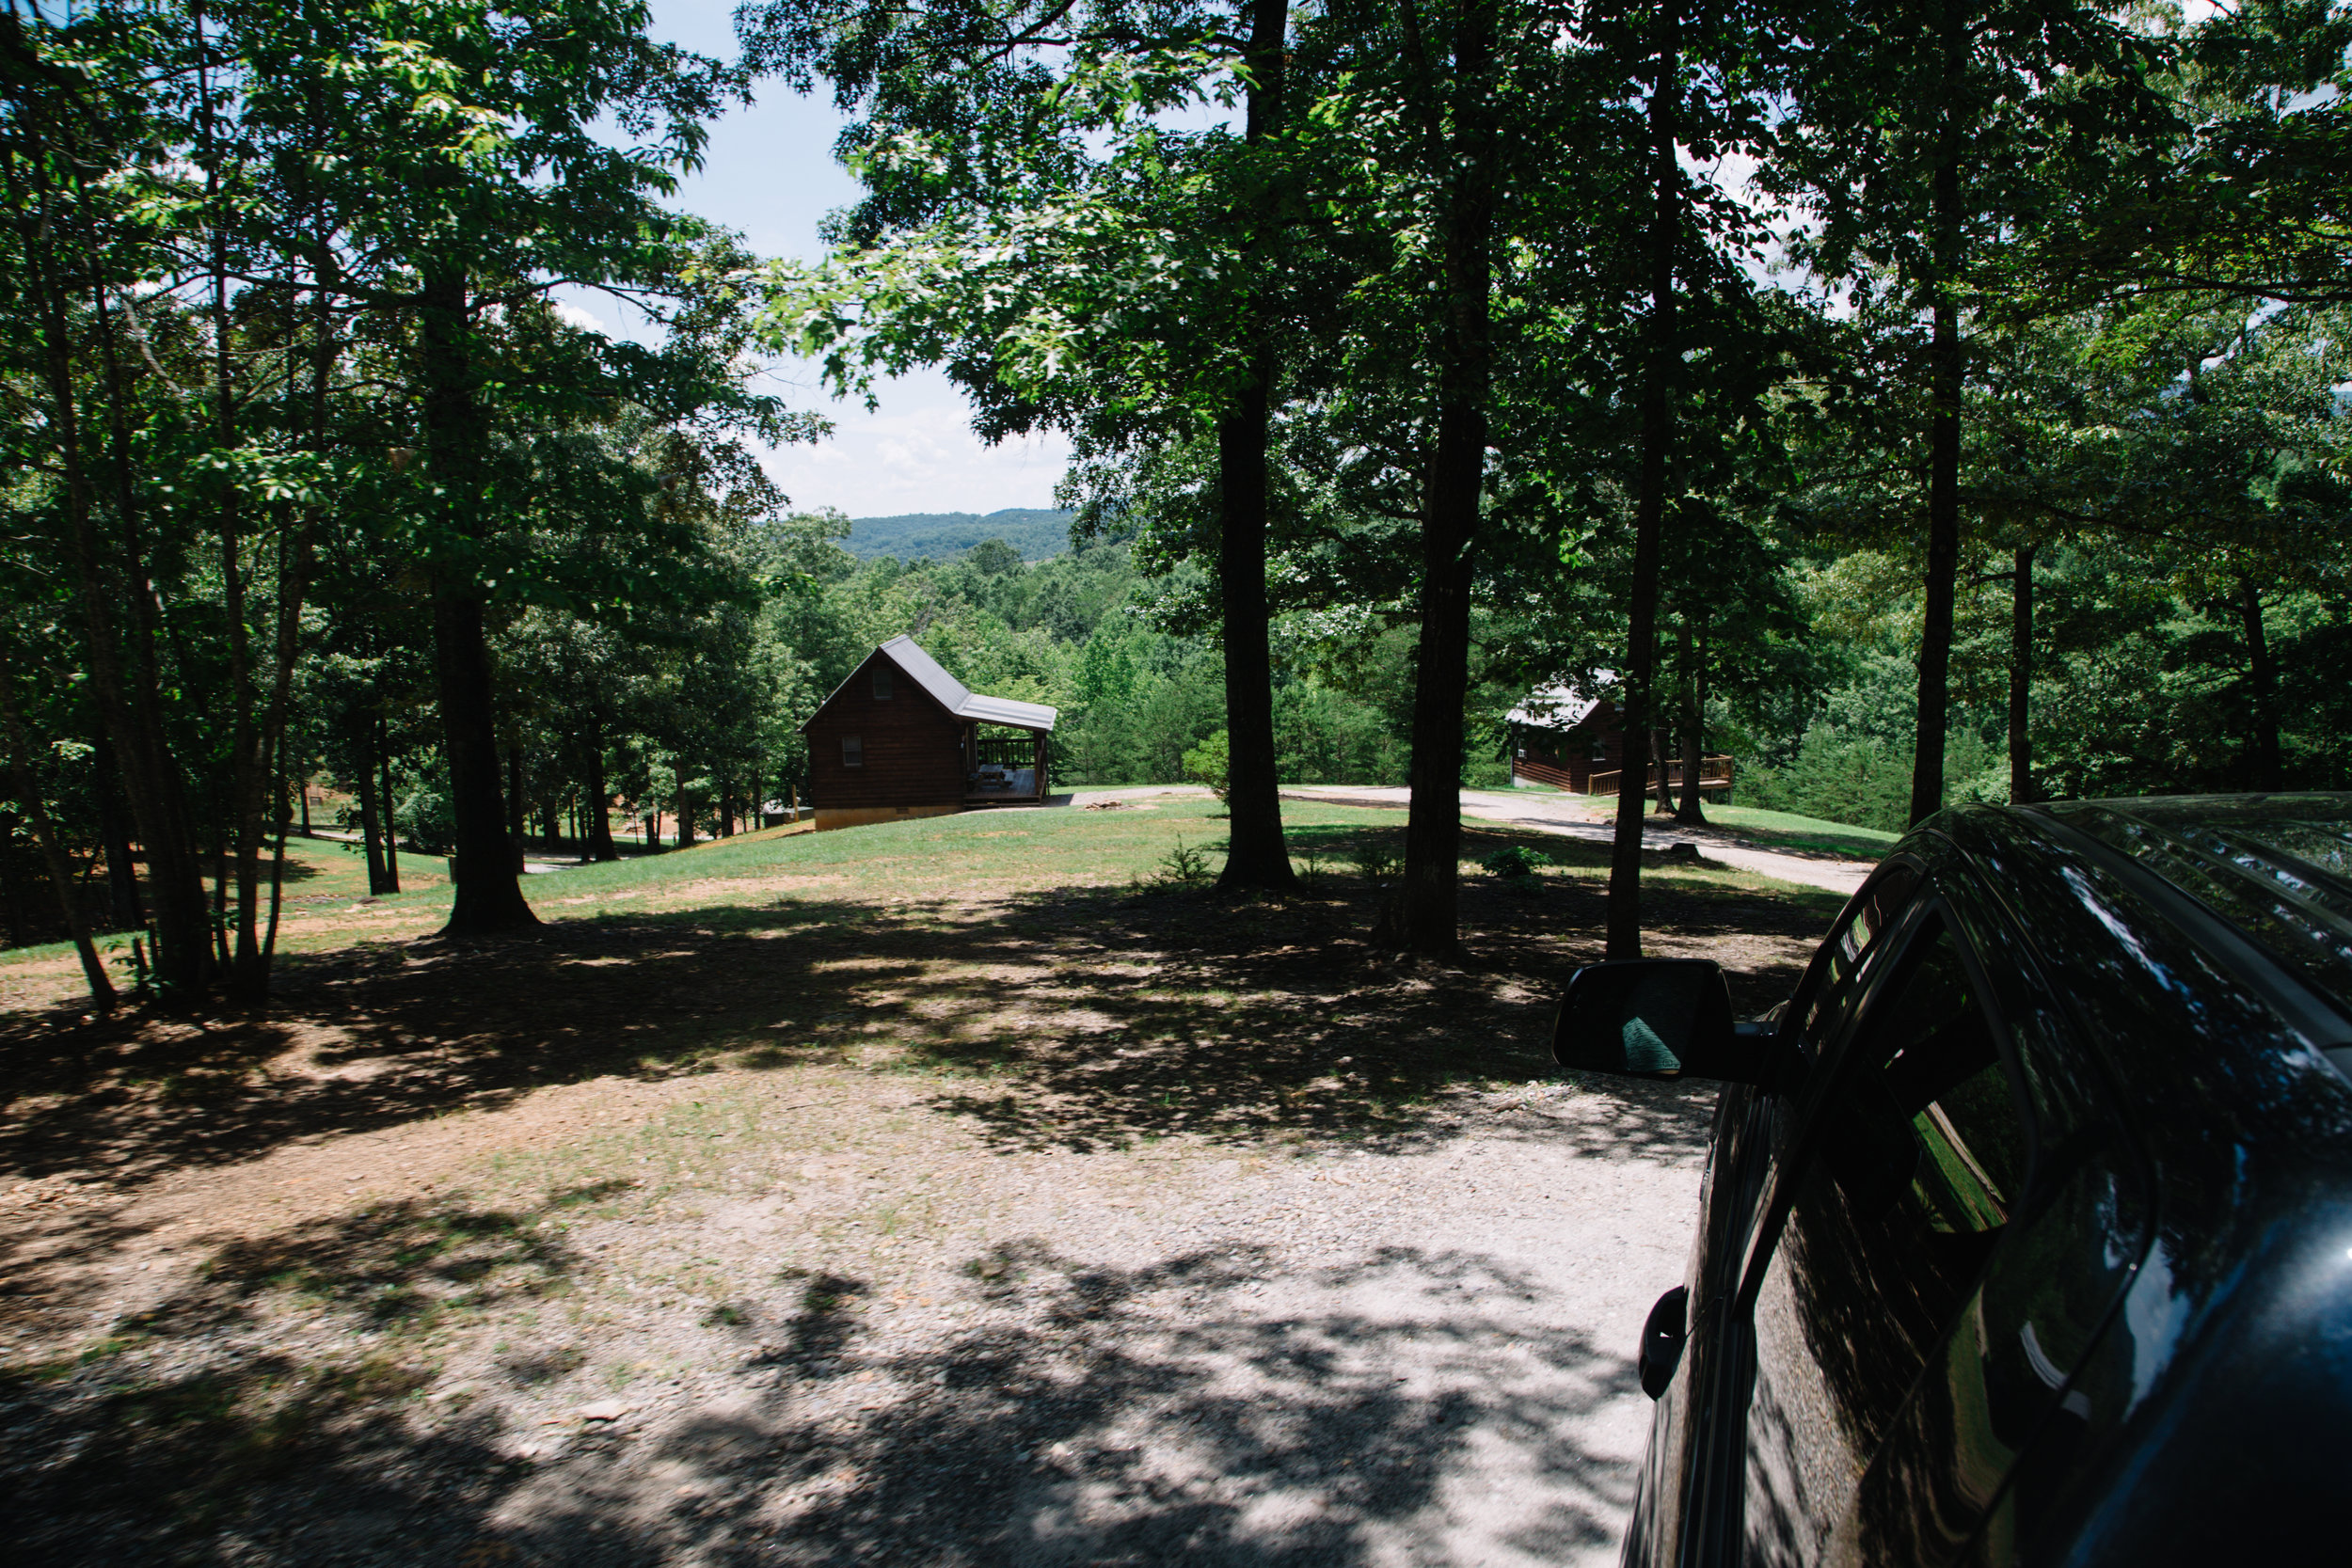 R Ranch in the Mountains provides fun for the whole family and views they'll never forget. Head over to MoreDetours.com to read more!